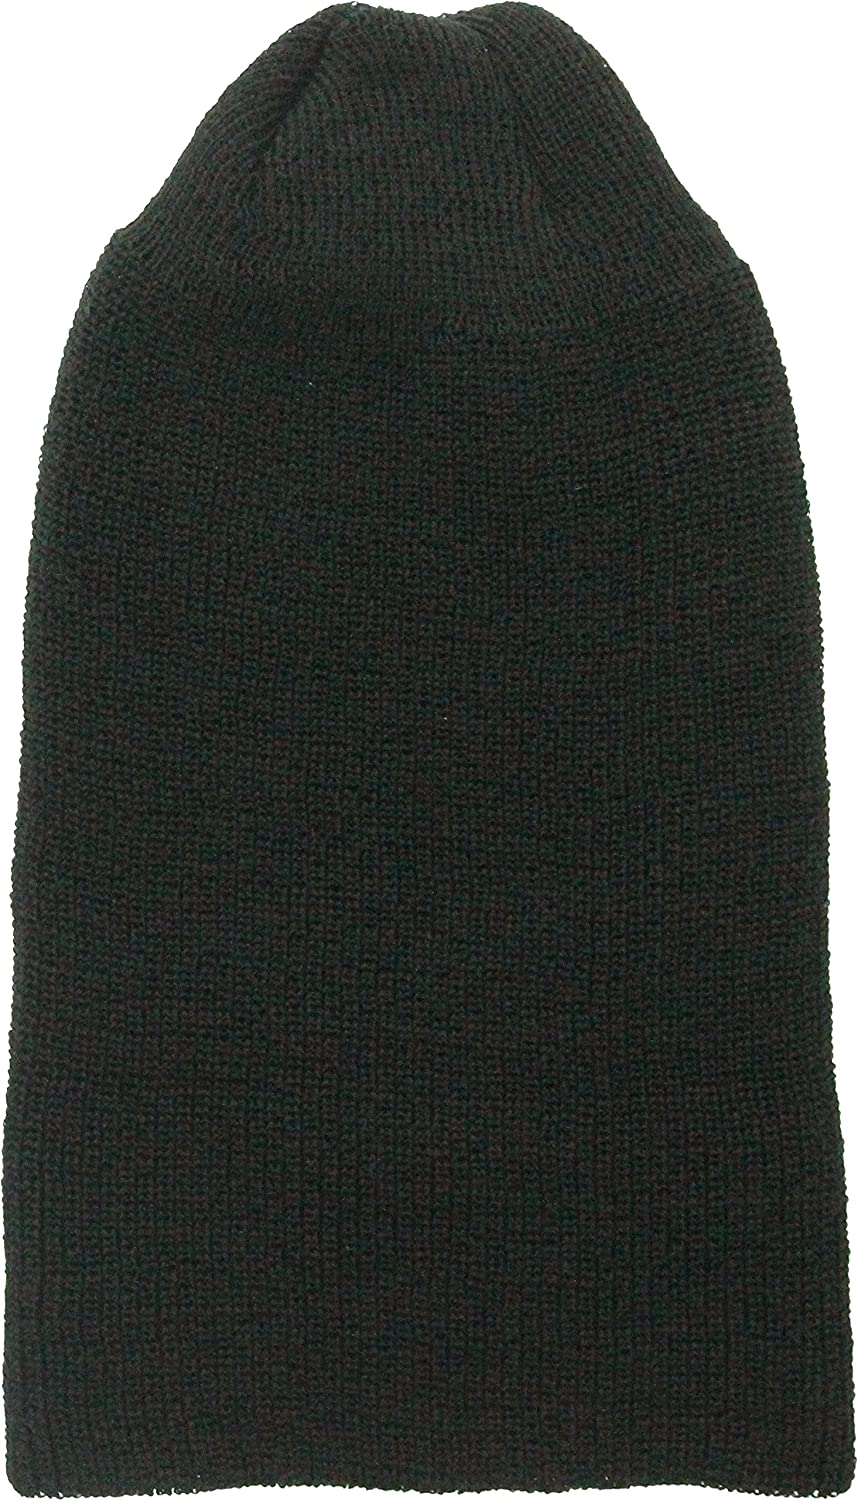 77859968f2f Amazon.com  Military Genuine GI Winter USN Warm Wool Hat Watch Cap (Black)   Clothing